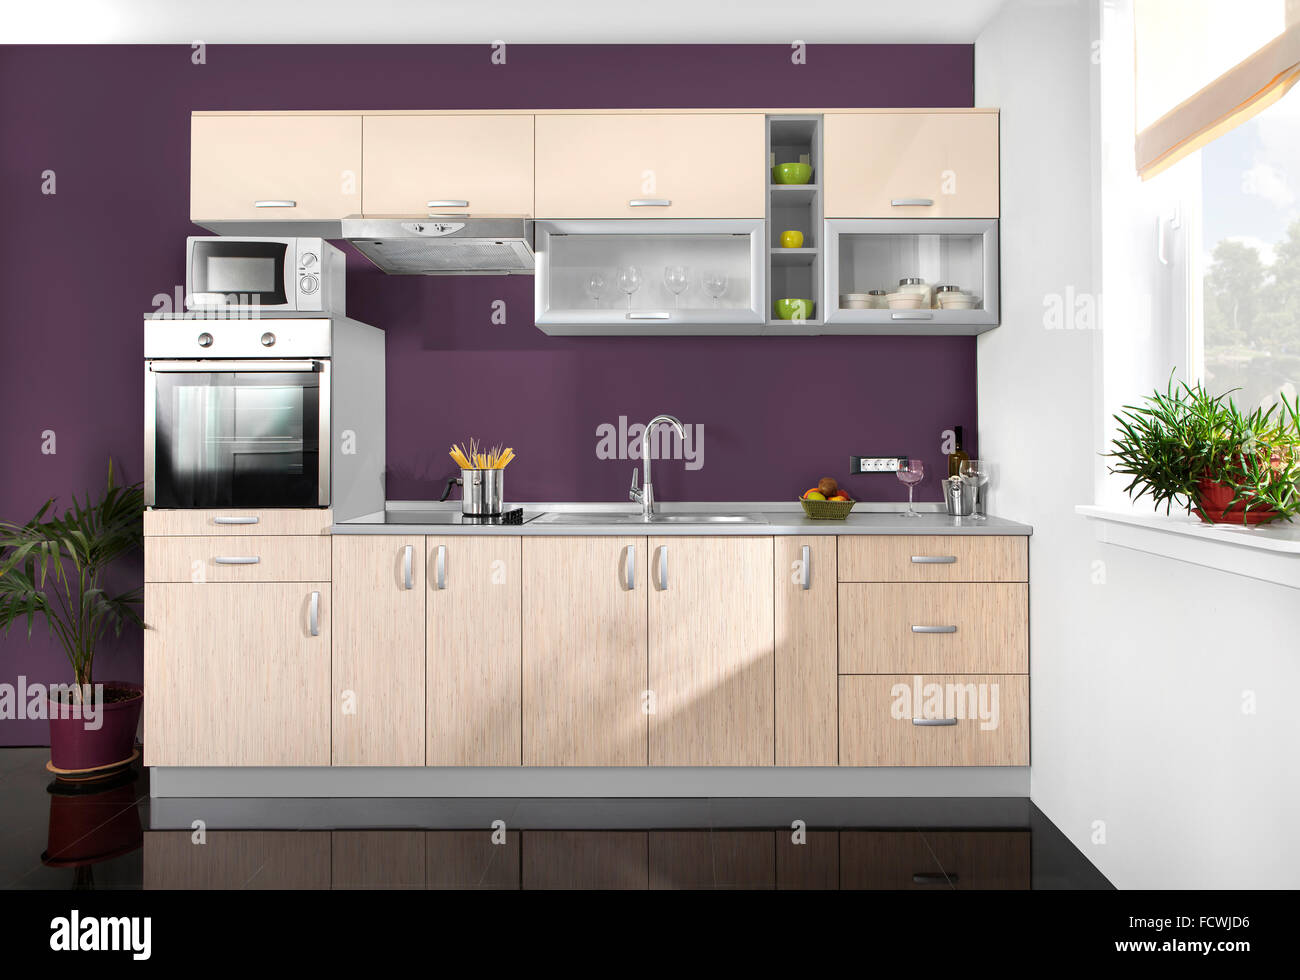 Interior of a modern kitchen, wooden furniture, simple and clean